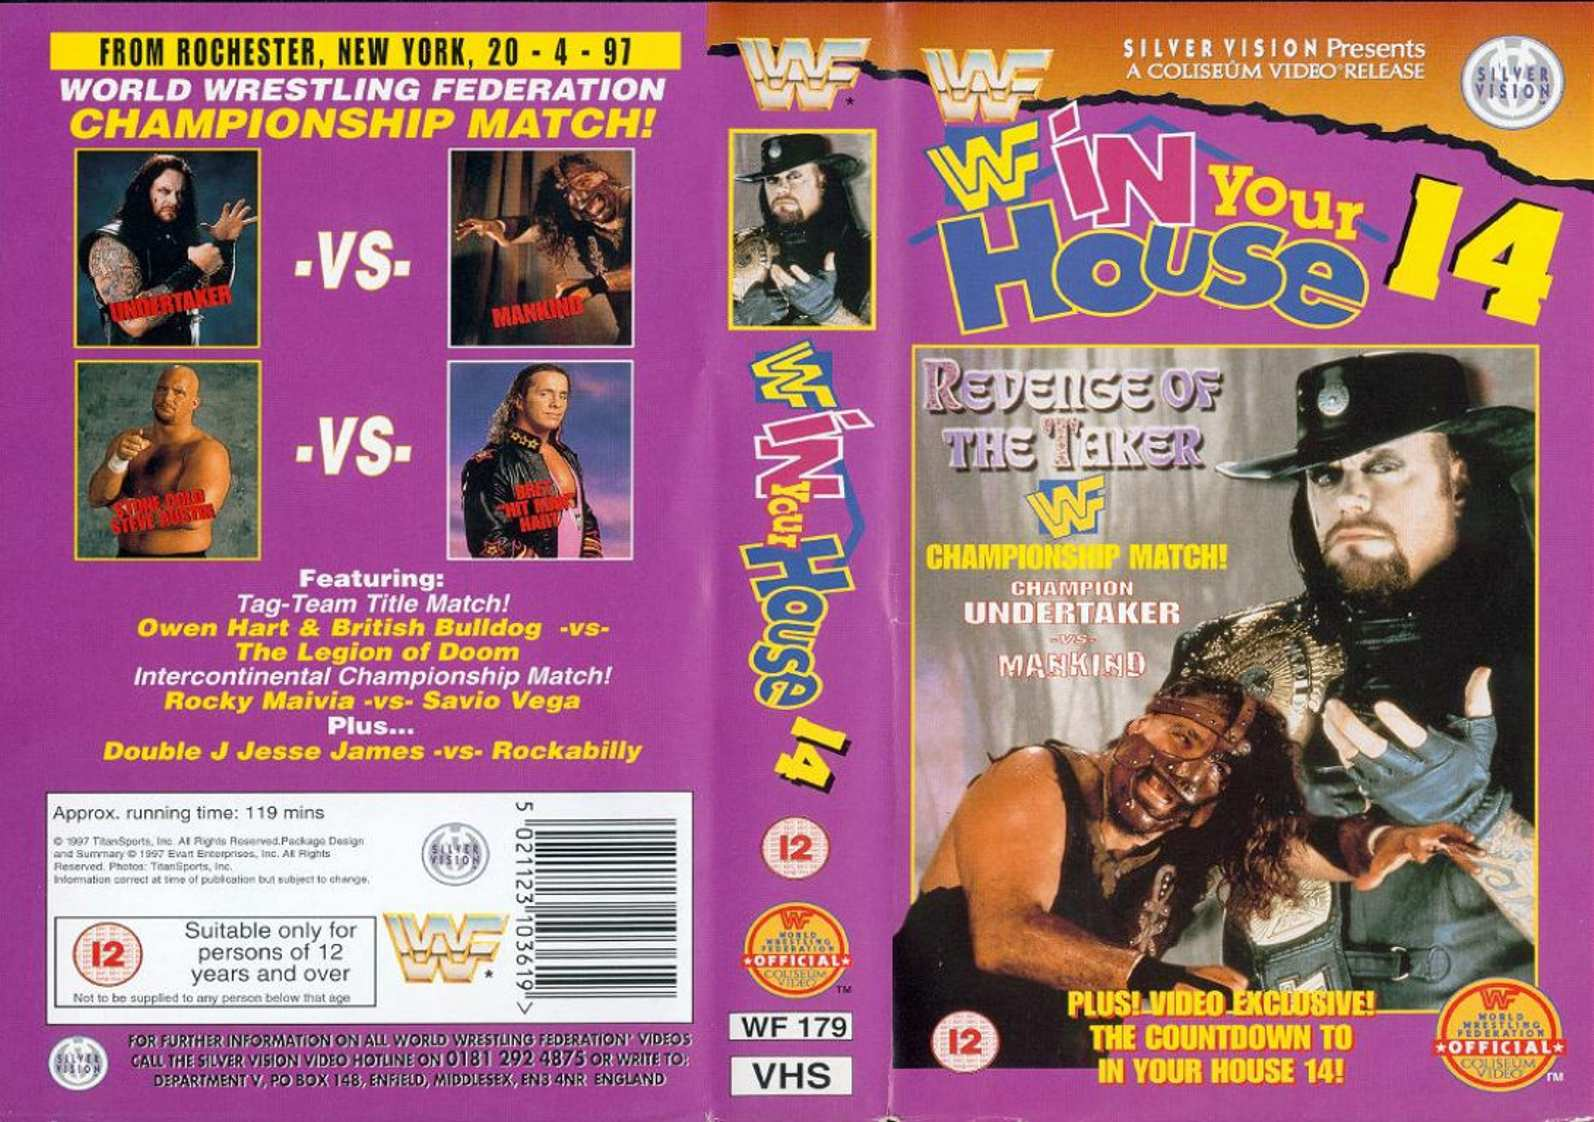 wwf_in_your_house_14_-_revenge_of_the_taker